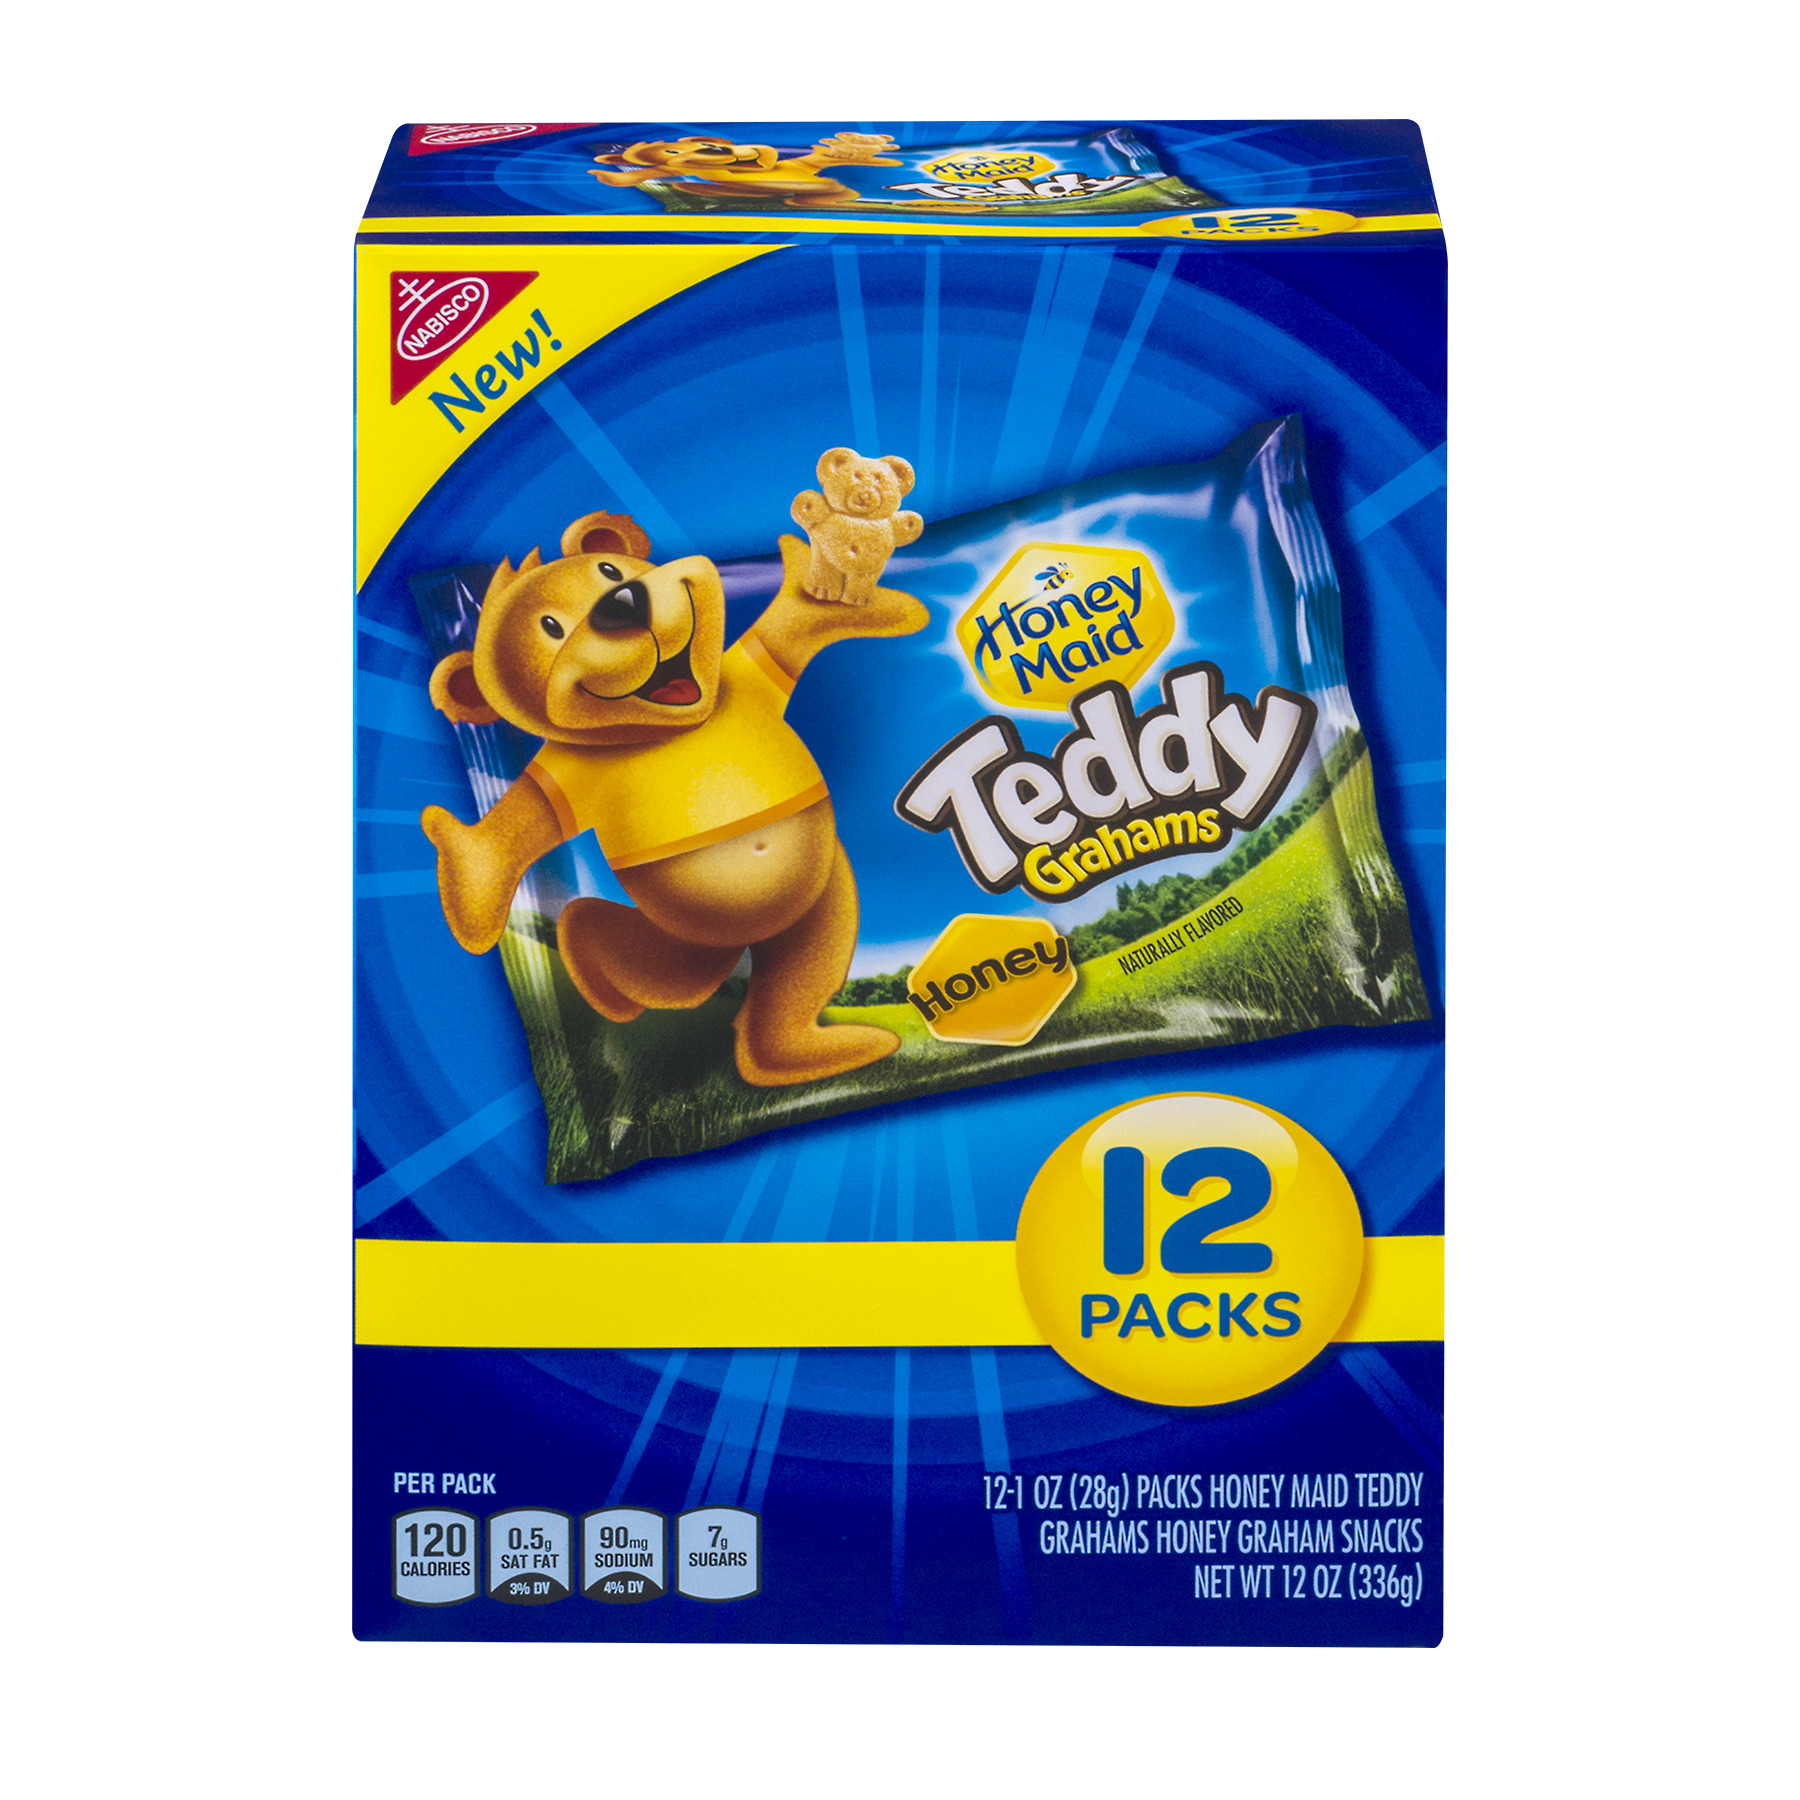 Nabisco Teddy Grahams Honey Graham Snacks 12-1 oz. Packs